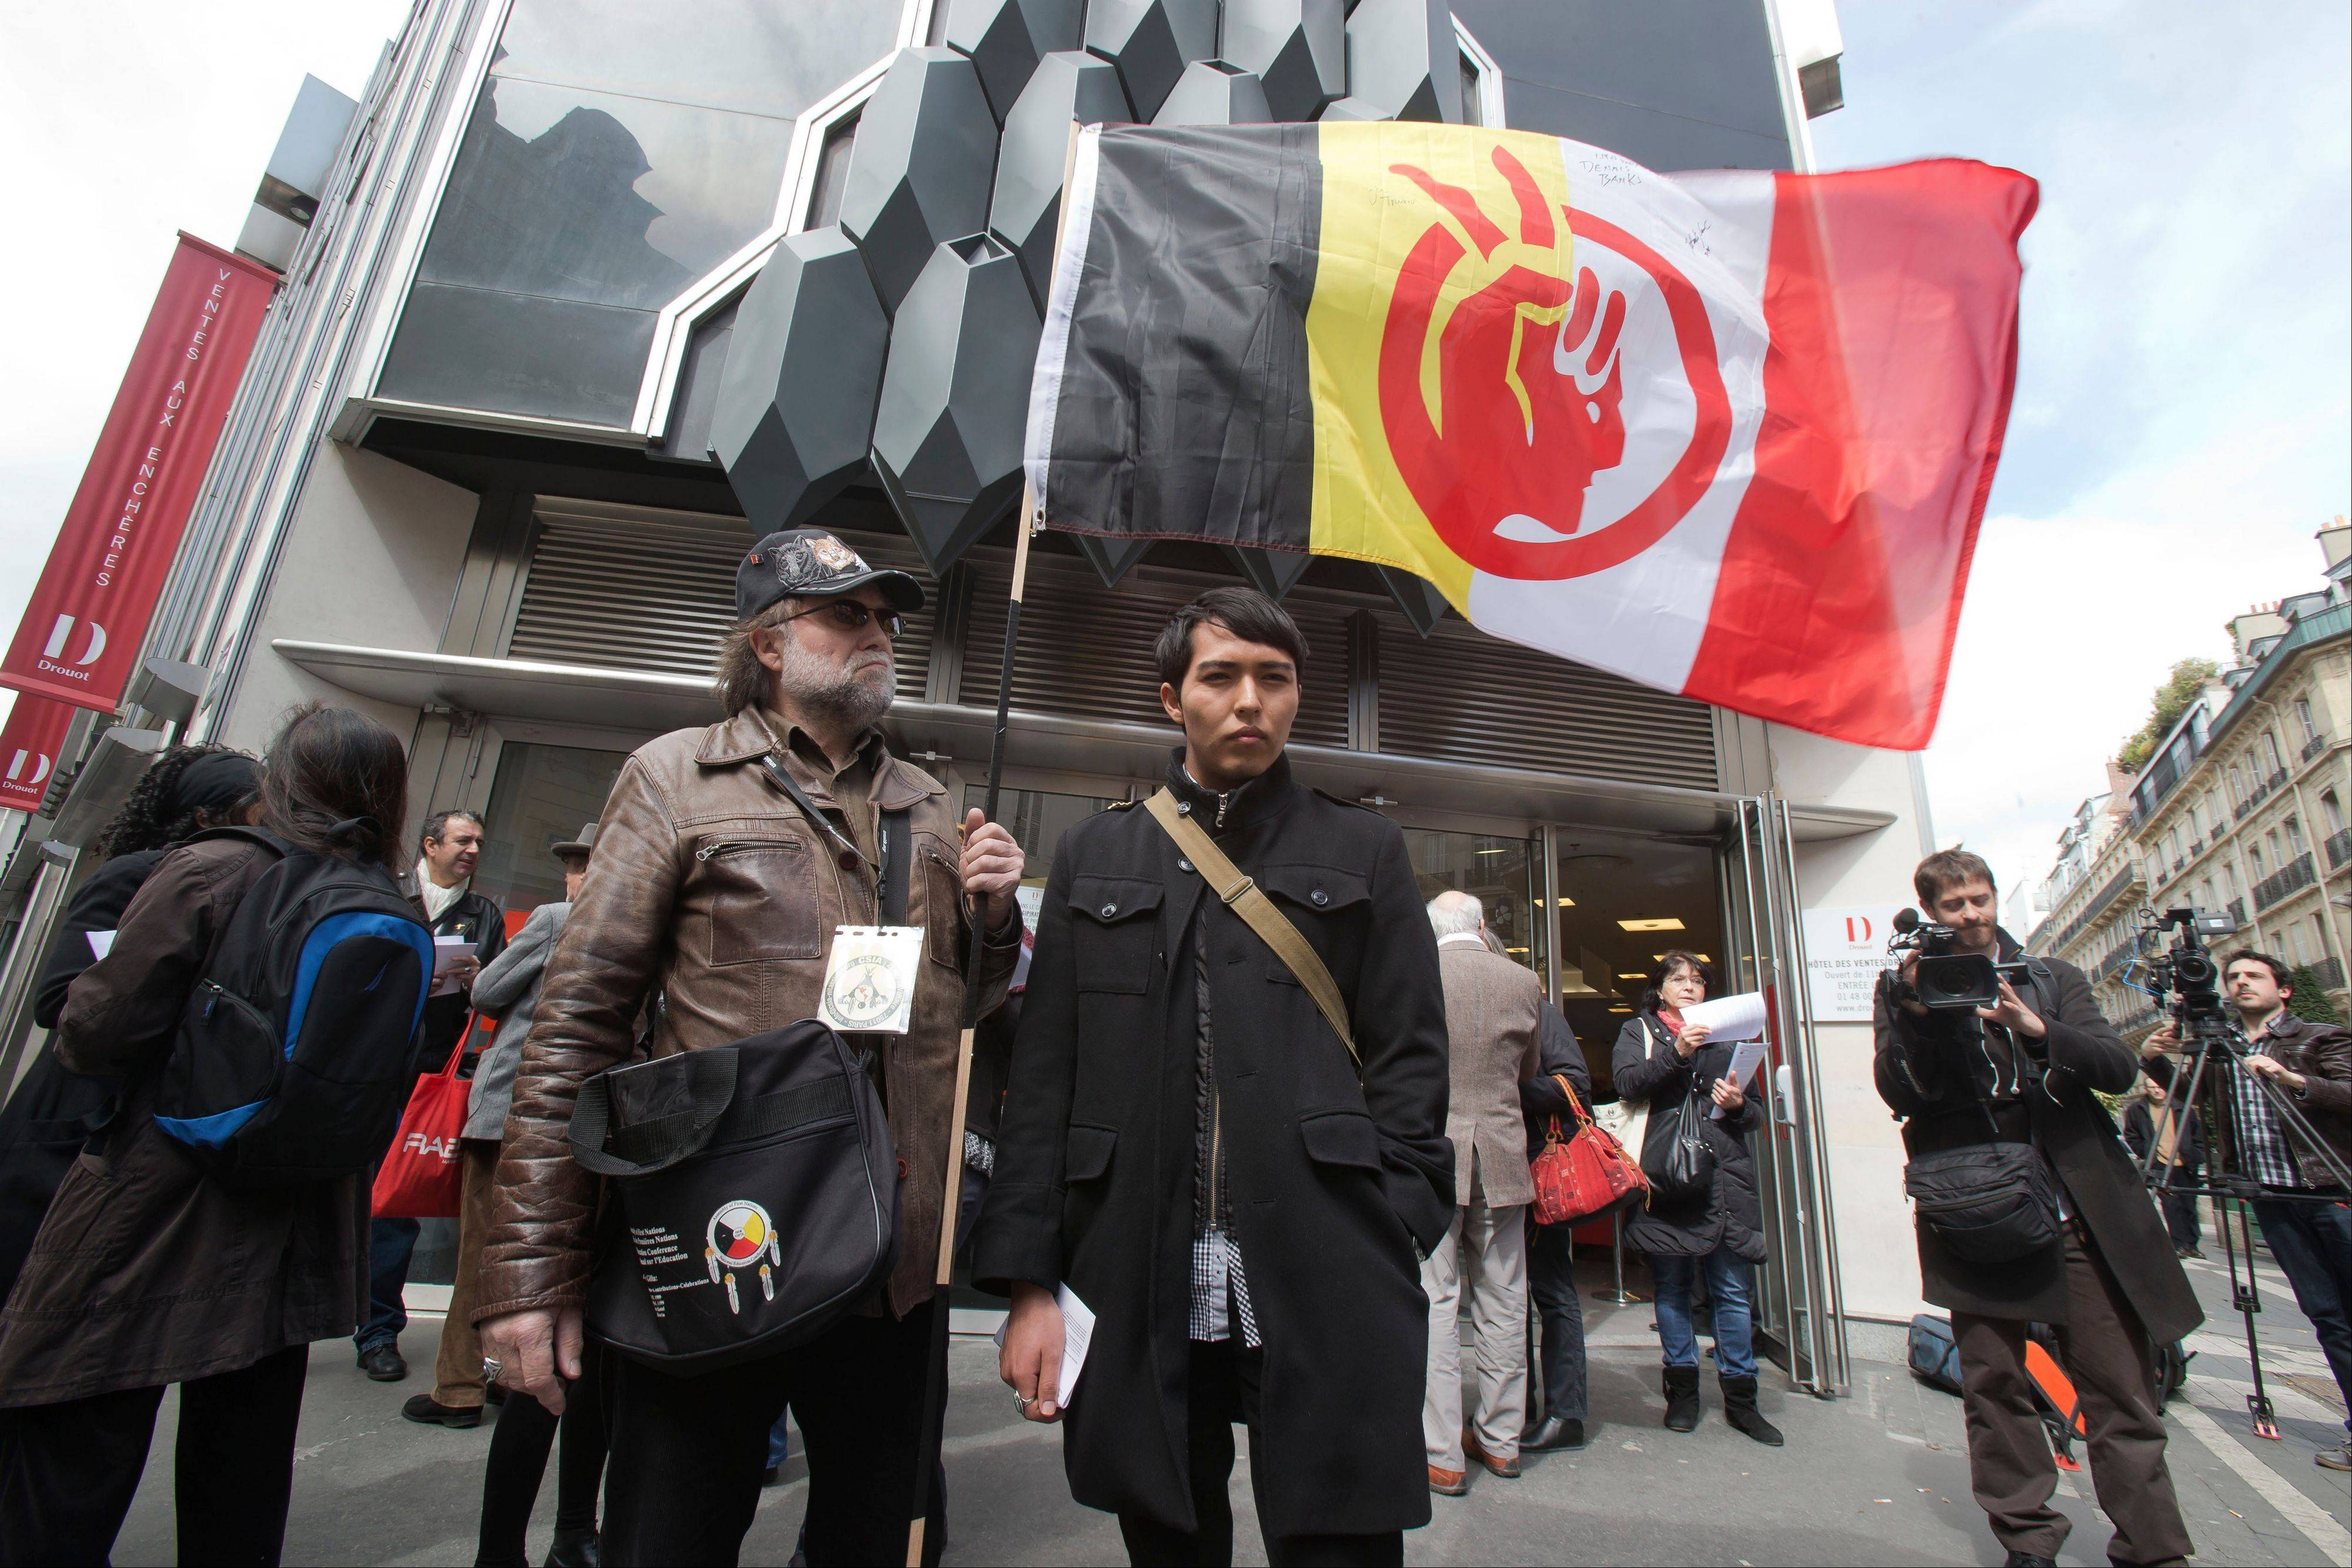 A French supporter of the Indian cause, who refused to give his name, left, holds a flag of the American Indian Movement and an American exchange student, member of the Arizona�s Hopi tribe, Bo Lomahquahu, right, stand outside of the Druout�s auction house to protest the auction of Native American Hopi tribe masks in Paris, Friday, April 12, 2013. A contested auction of dozens of Native American tribal masks went ahead Friday afternoon following a Paris court ruling, in spite of appeals for a delay by the Hopi tribe, its supporters including actor Robert Redford, and the U.S. government.